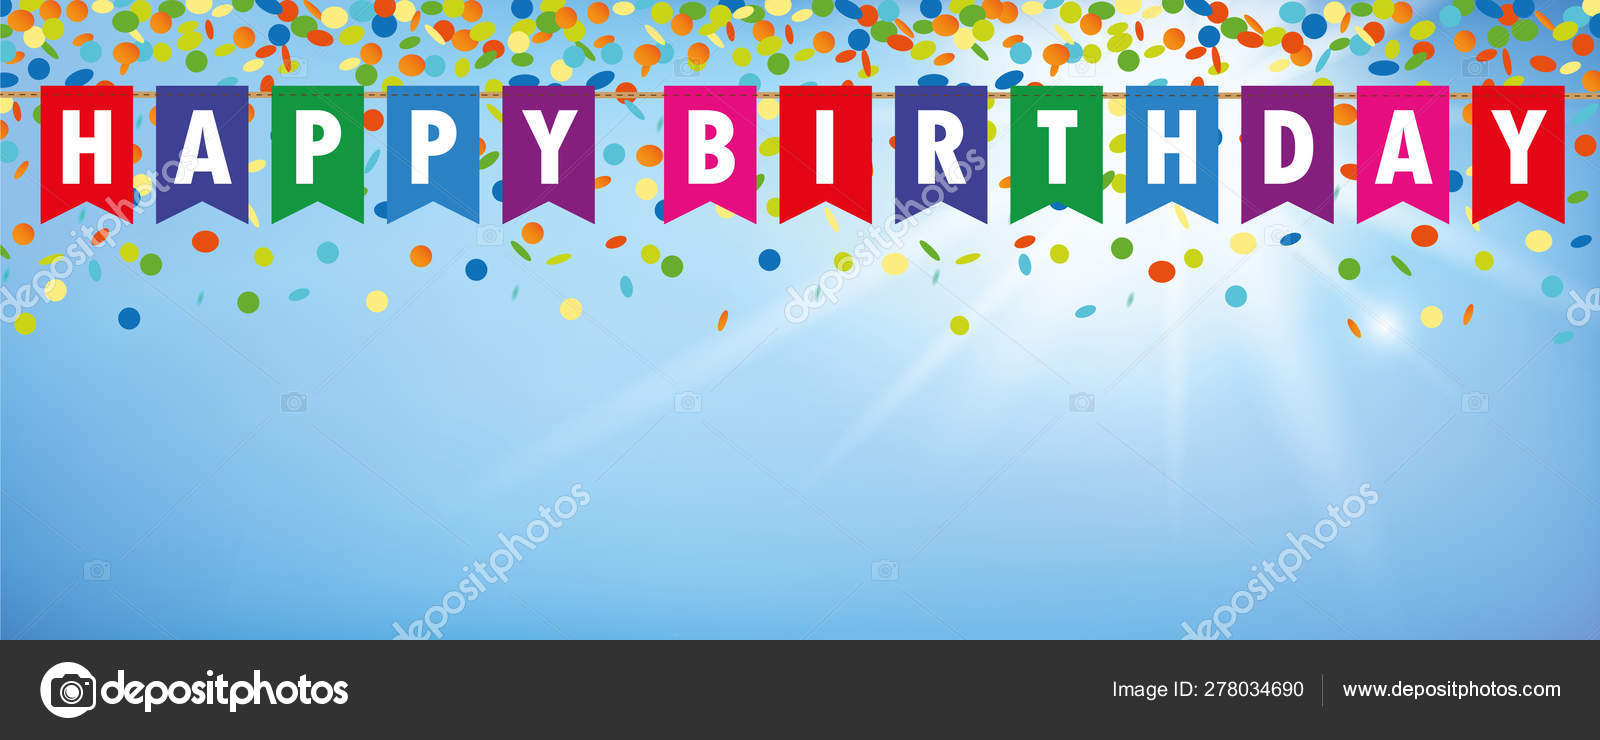 Happy Birthday Party Flags Banner With Confetti Rain On Blue Sunny Background Stock Vector C Krissikunterbunt 278034690